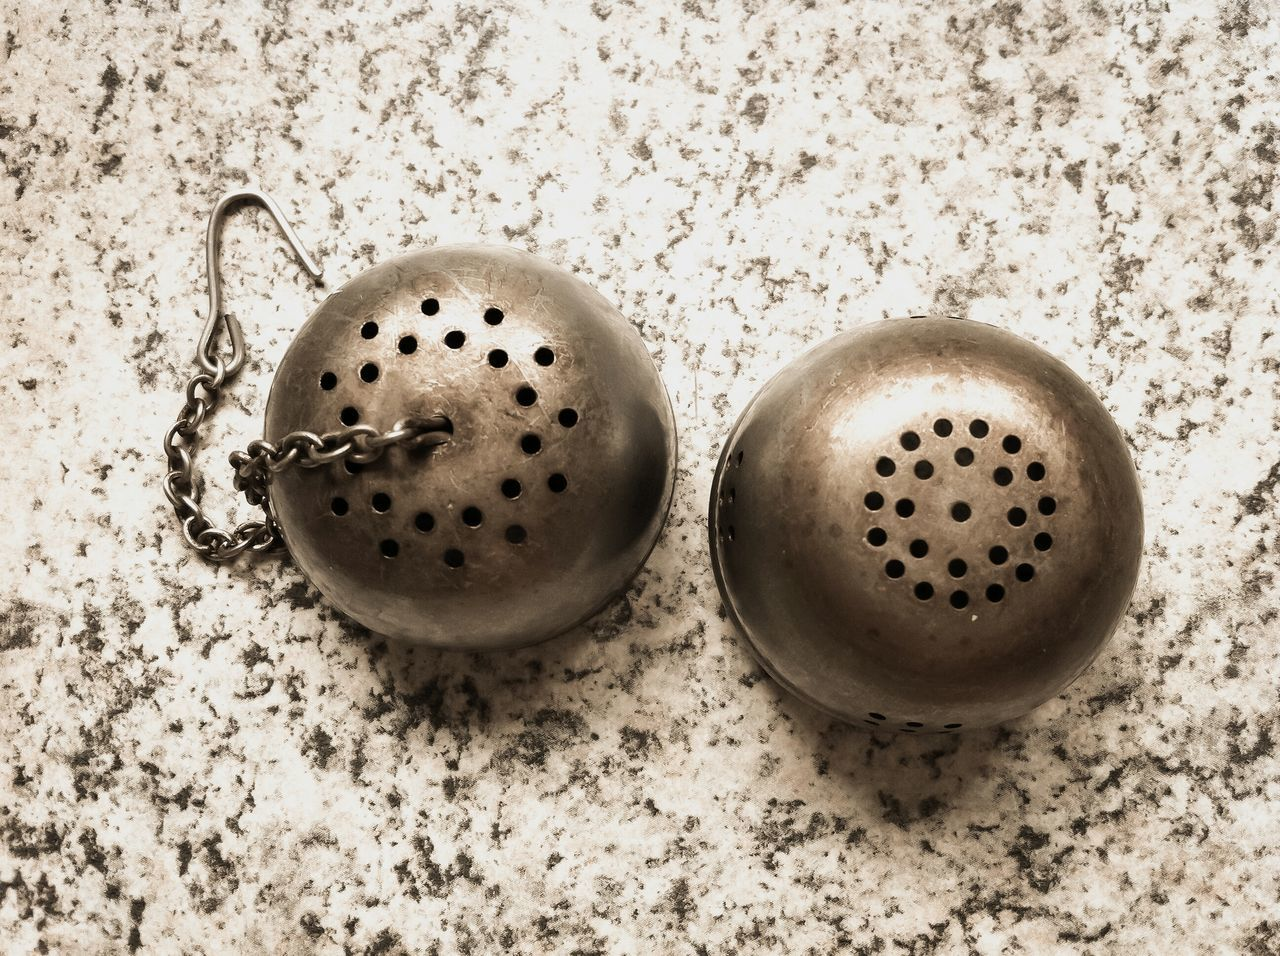 High Angle View Of Tea Strainer On Kitchen Counter